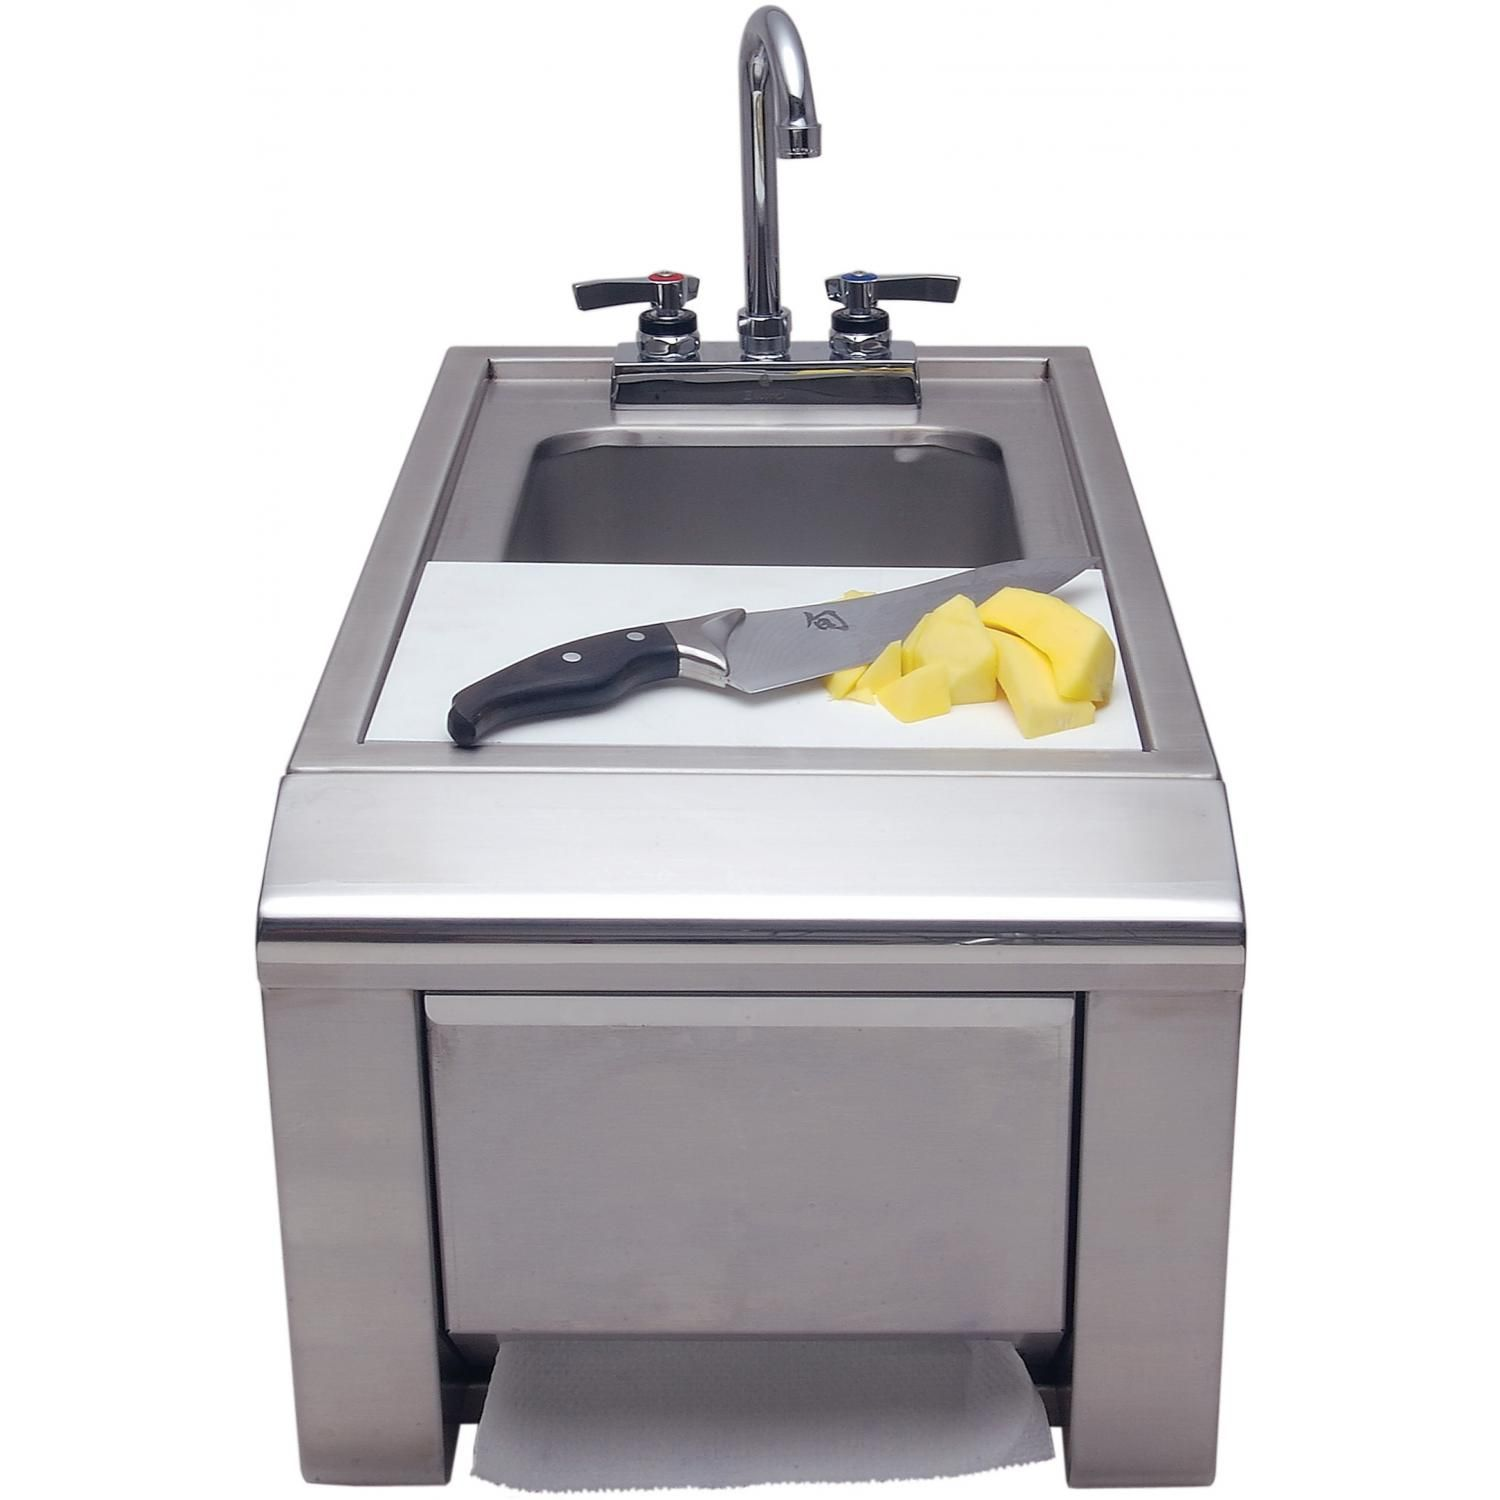 Alfresco 14 Inch Outdoor Rated Prep And Wash Sink With Towel Dispenser    ASK T